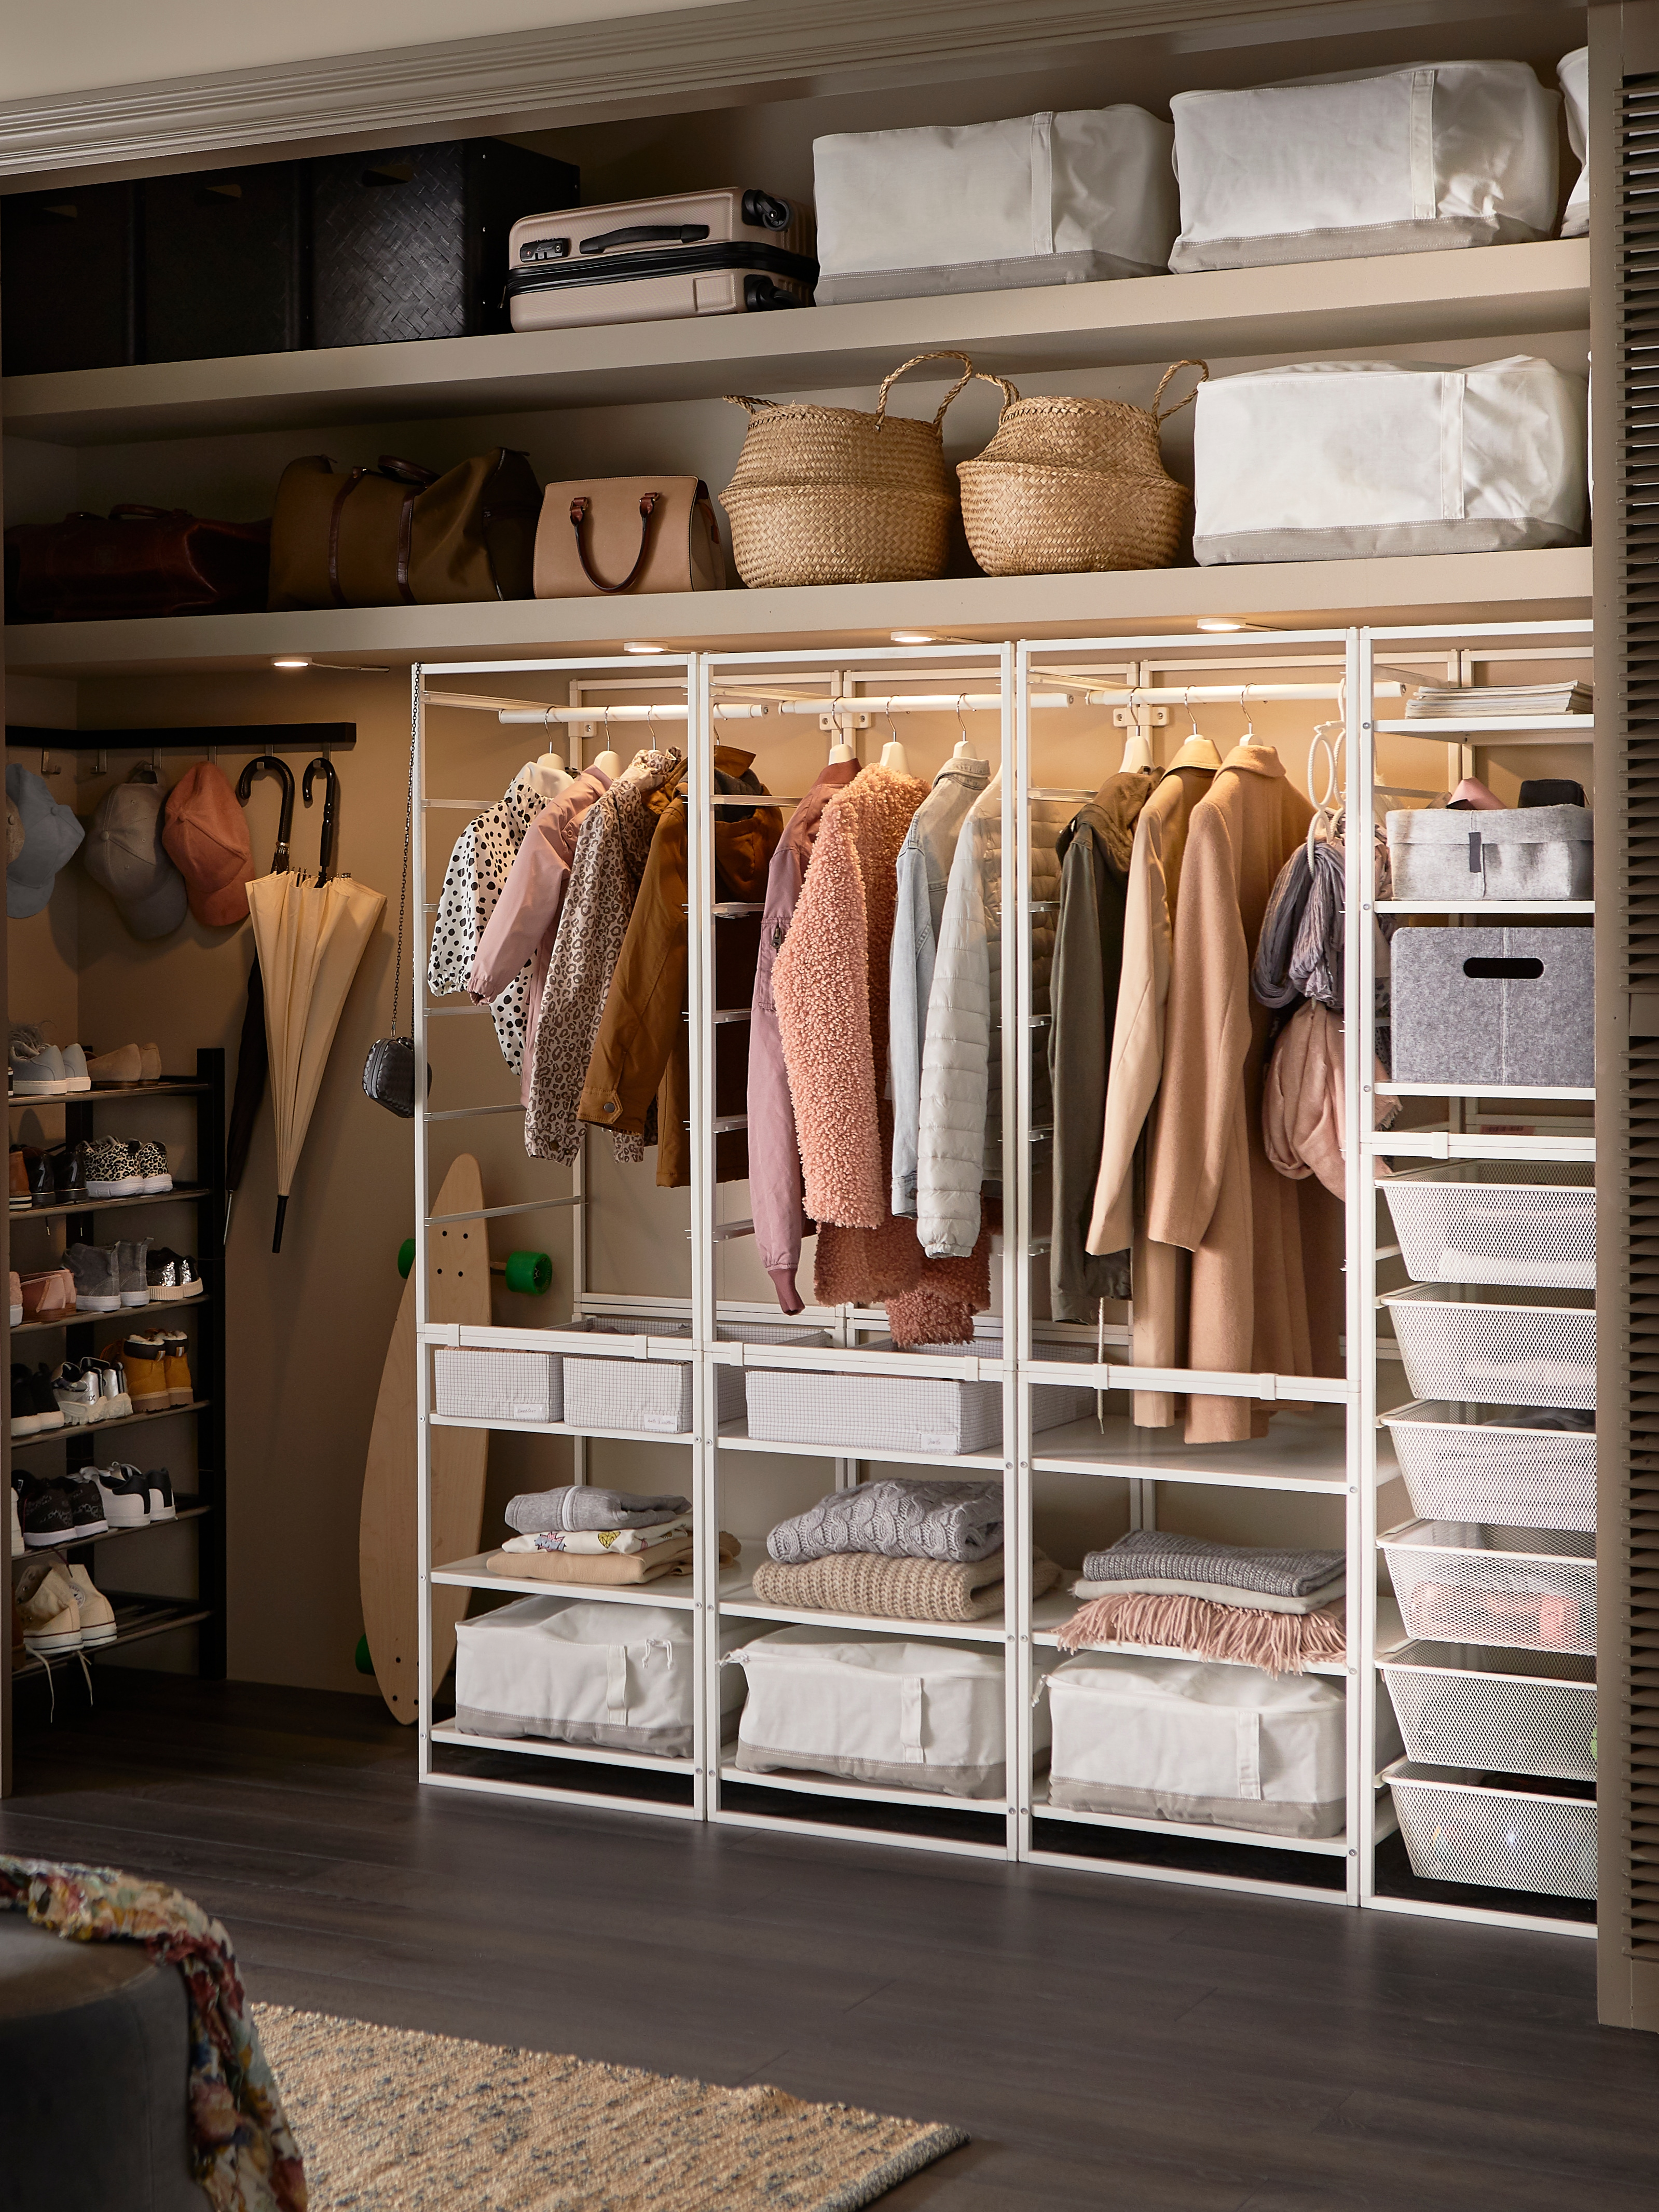 JONAXEL storage system with metal baskets containing clothes, and other articles of clothing hanging on racks.